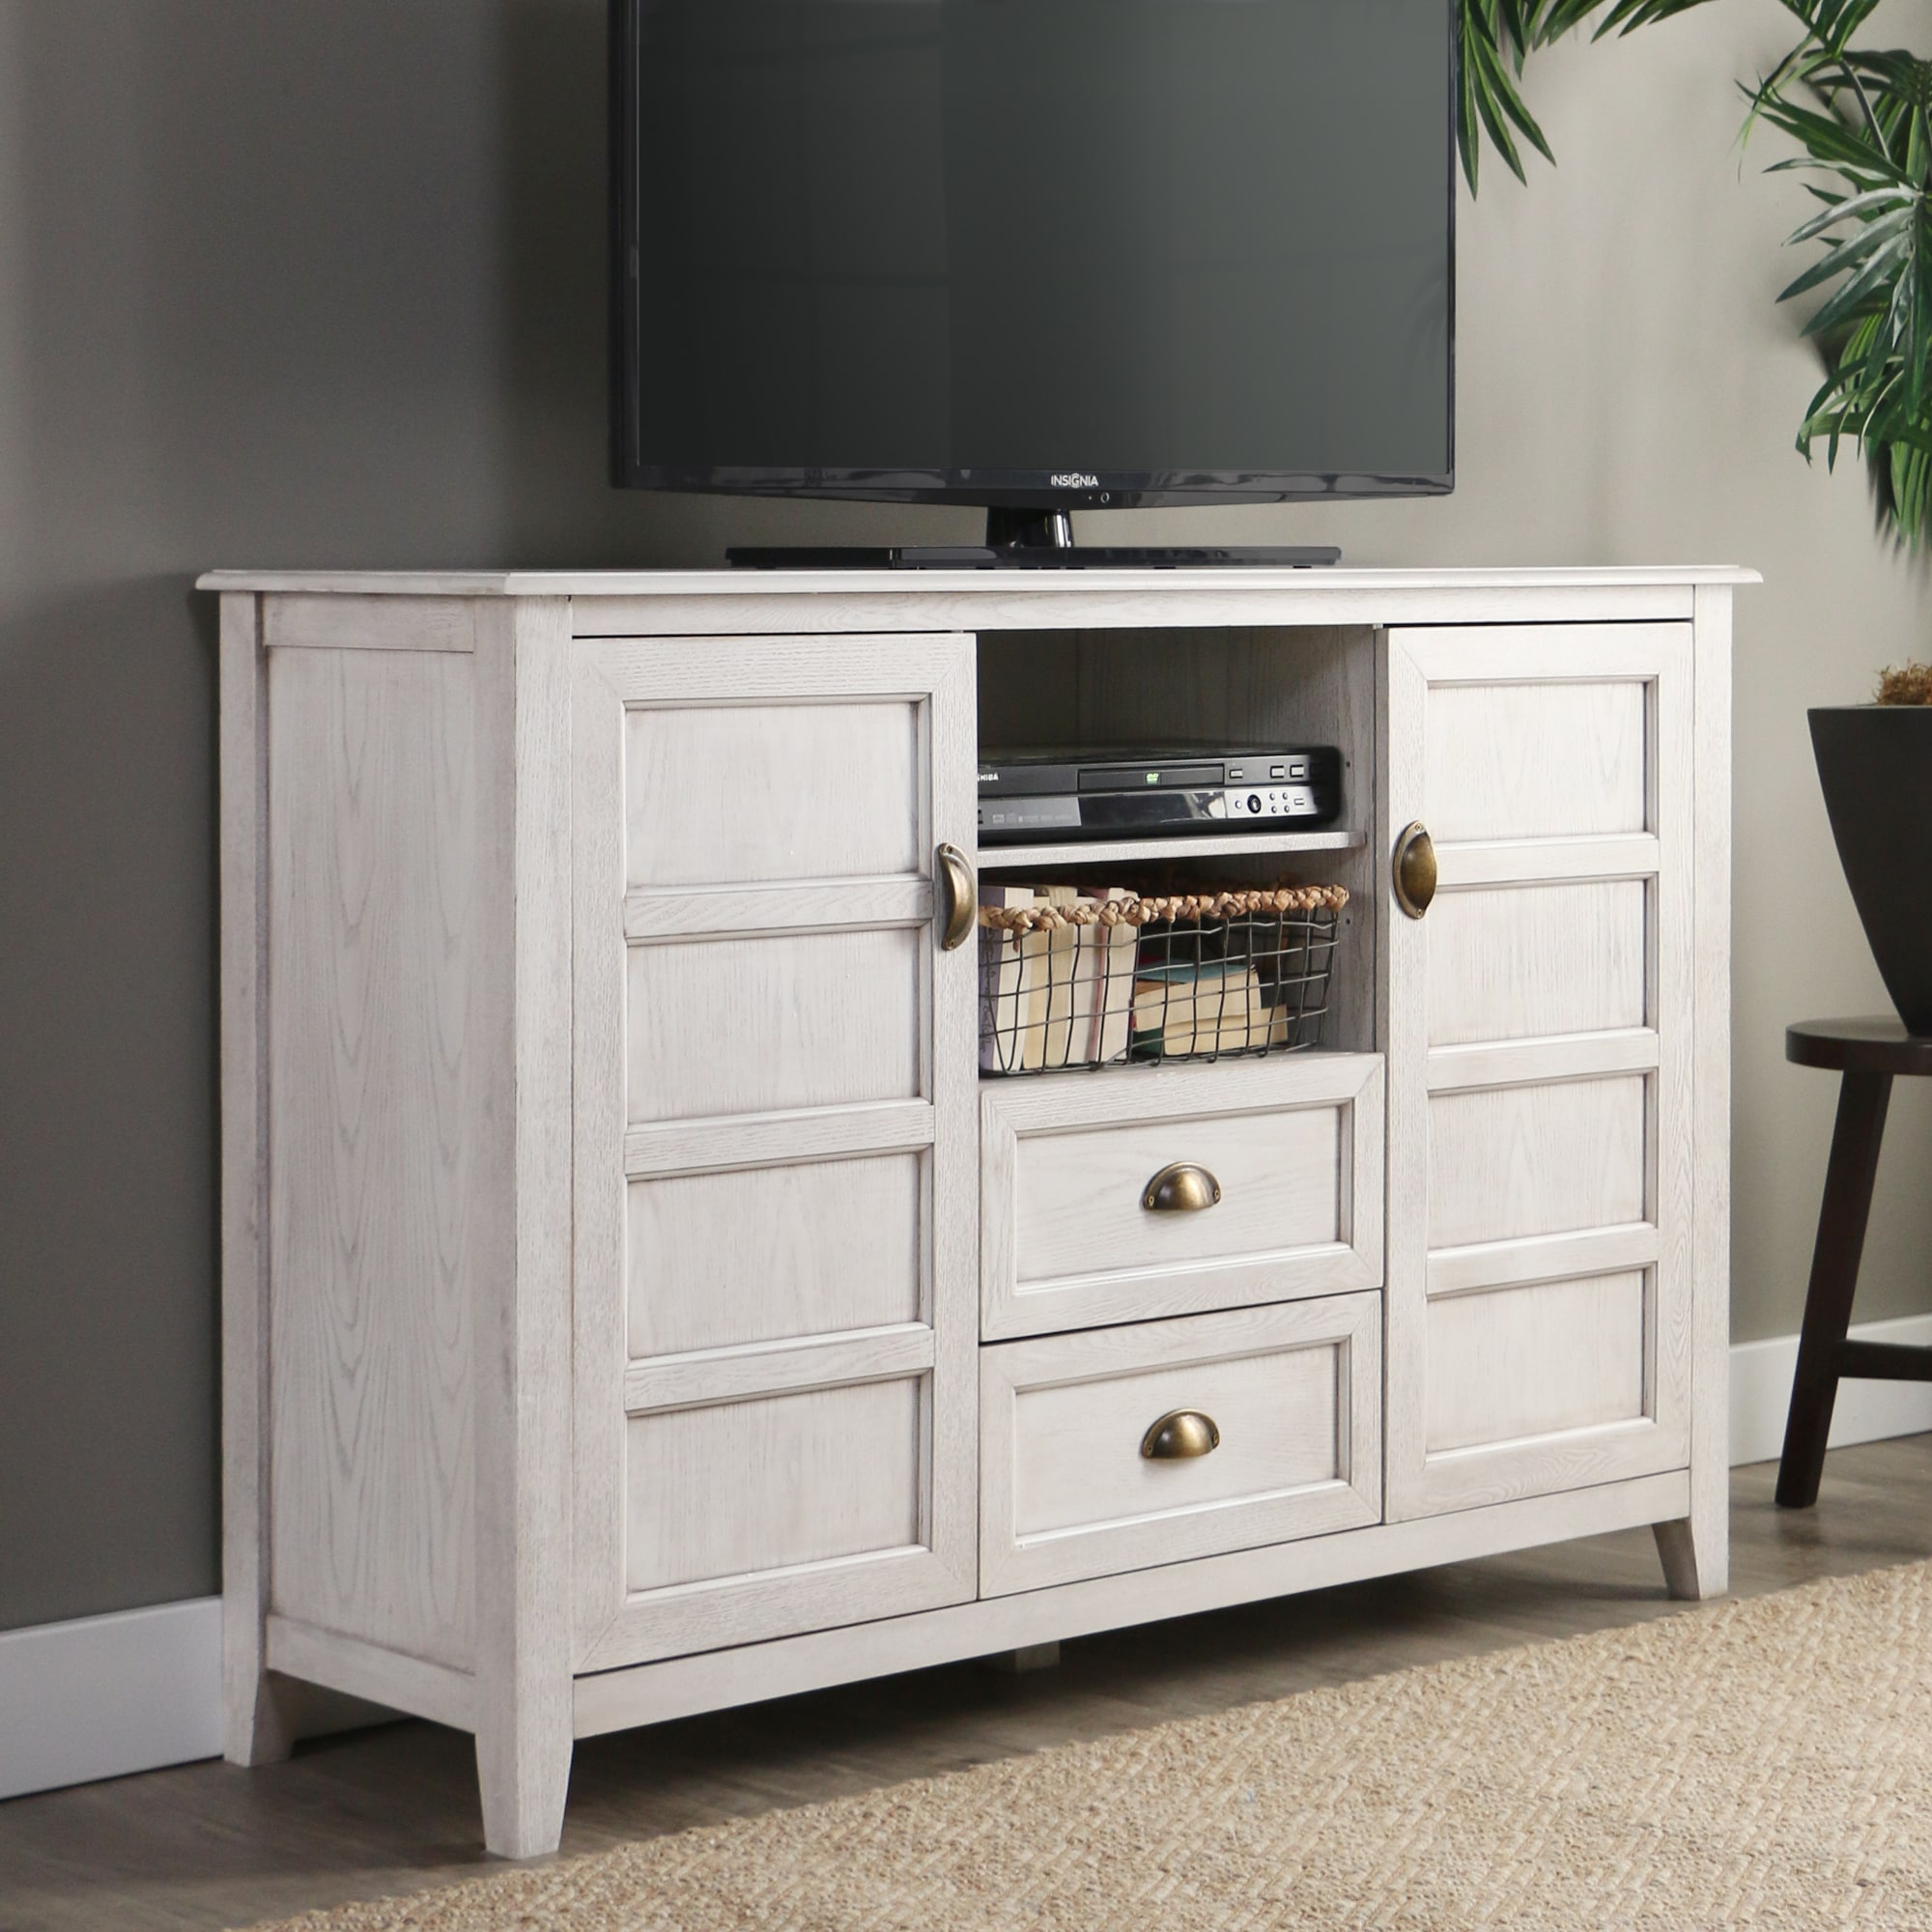 Tv Stand Cabinet 52 Inch Rustic Chic White Console Storage Hallway